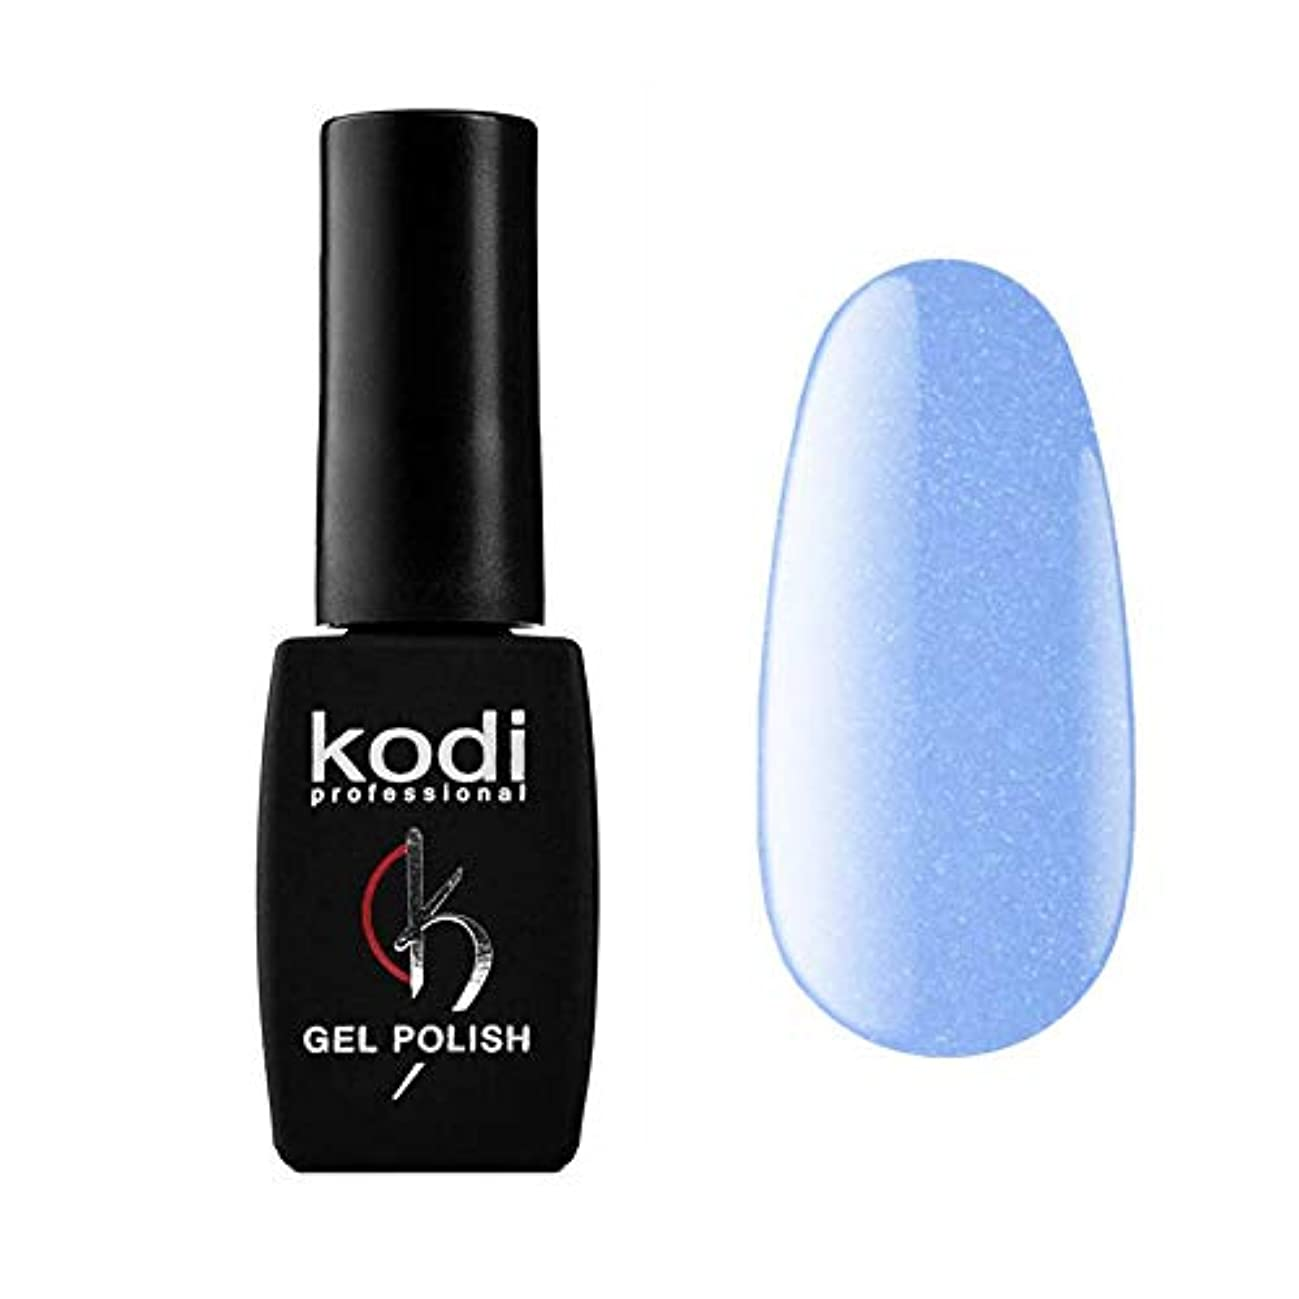 リアル麻酔薬ささいなKodi Professional New Collection B BLUE #140 Color Gel Nail Polish 12ml 0.42 Fl Oz LED UV Genuine Soak Off